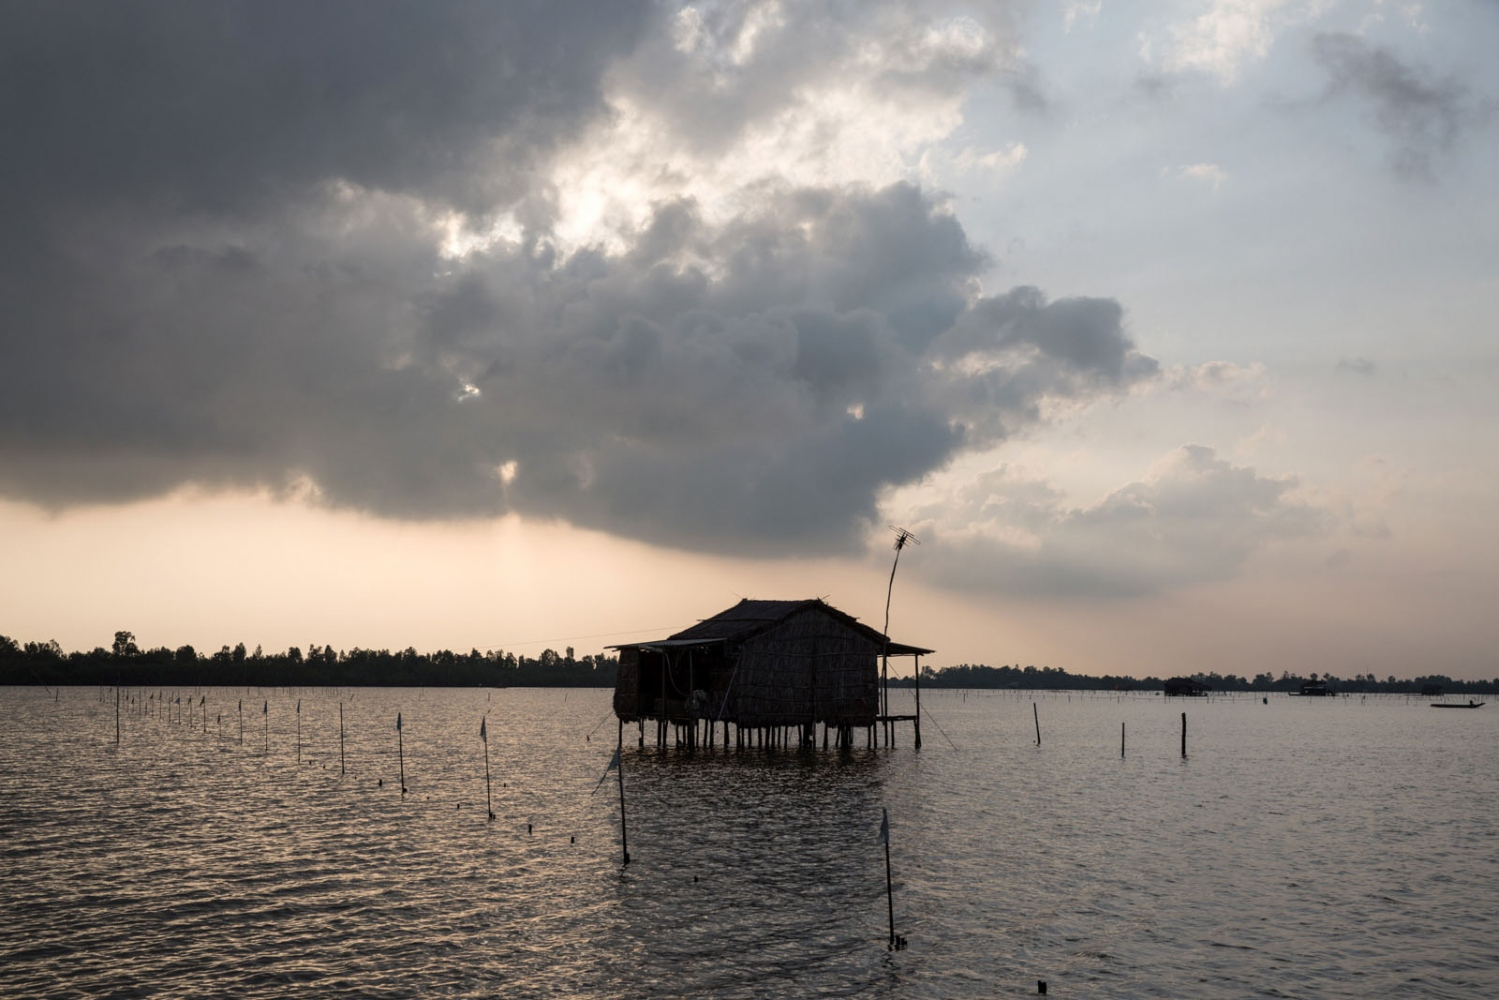 A fisherman's house on stilts in the middle of Thi Tuong Lagoon in Ca Mau Province. 2km wide and over 10km long it is the largest natural lagoon in the Delta and an important for the hundreds of fishermen and families who rely on it.